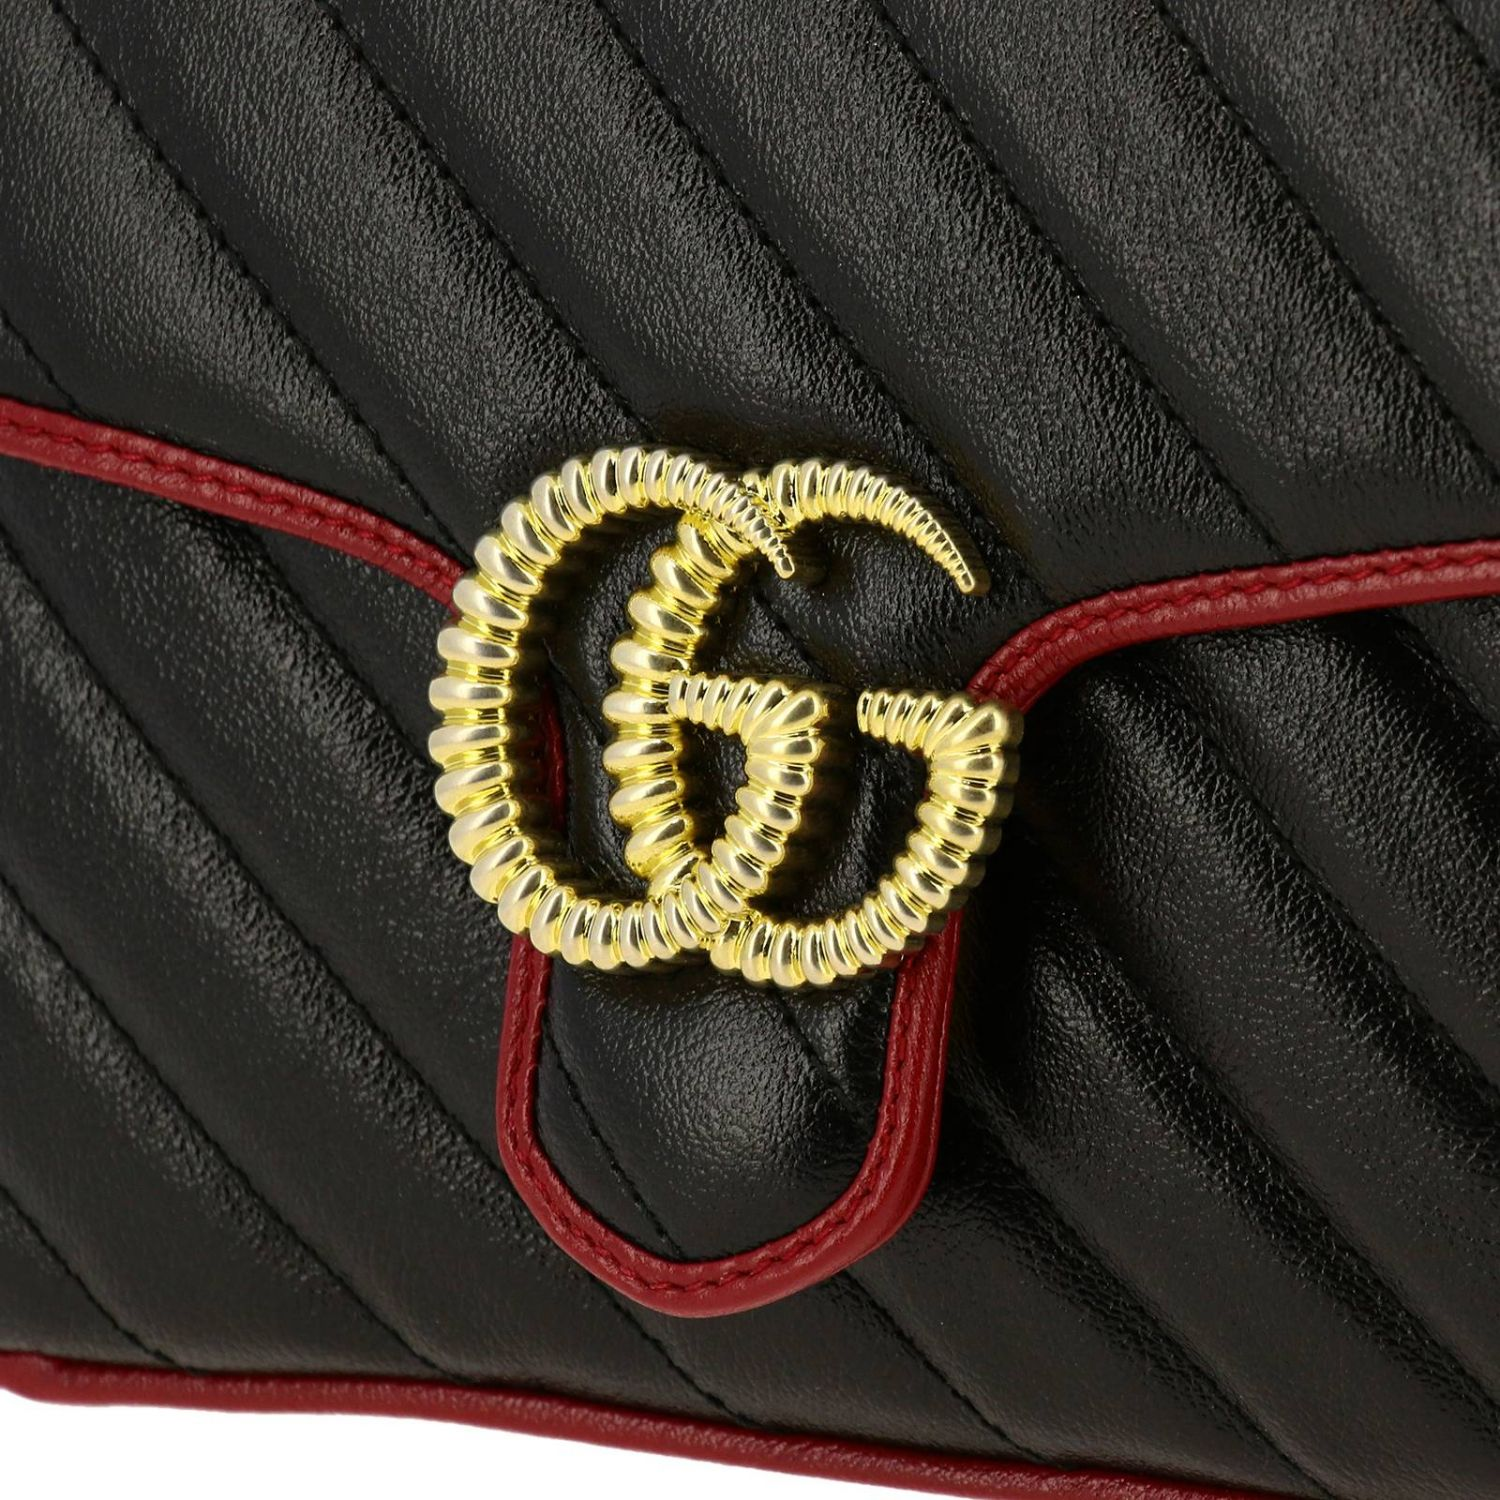 Mini bag Gucci: GG Marmont Gucci mini quilted leather bag with shoulder strap black 3